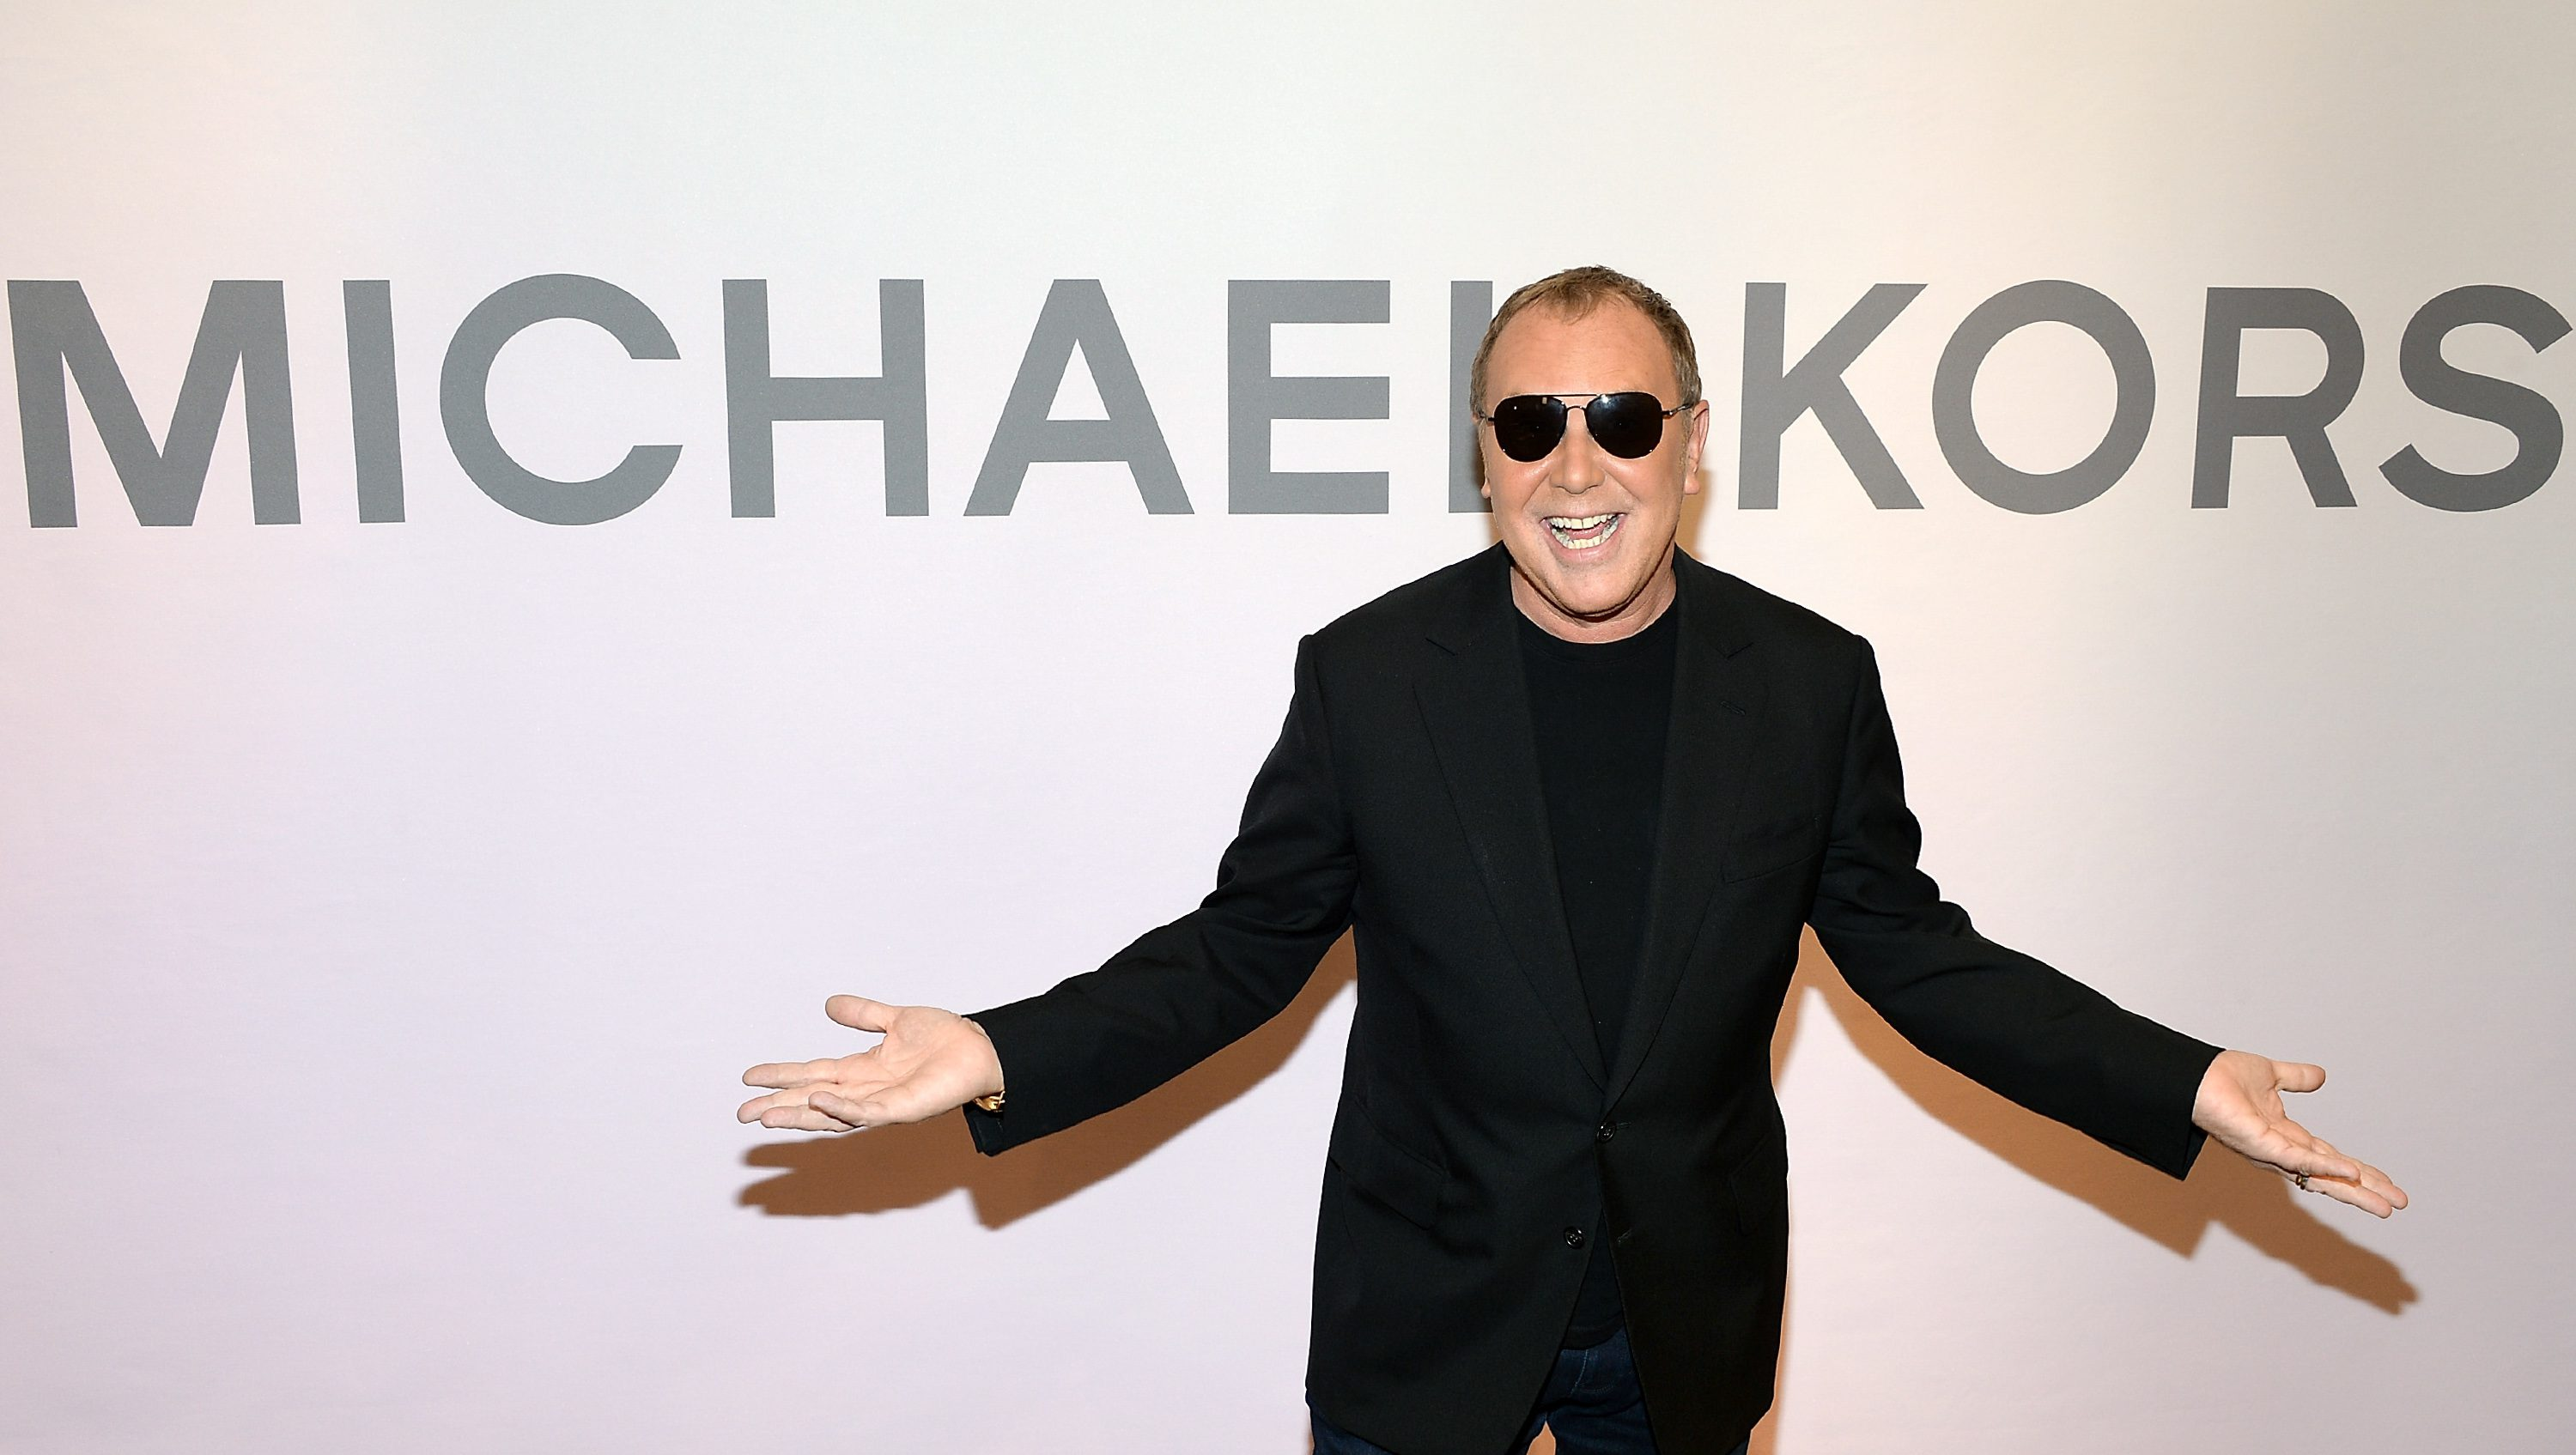 Michael Kors and Jimmy Choo: Our Current Favorite Styles Before They Merge